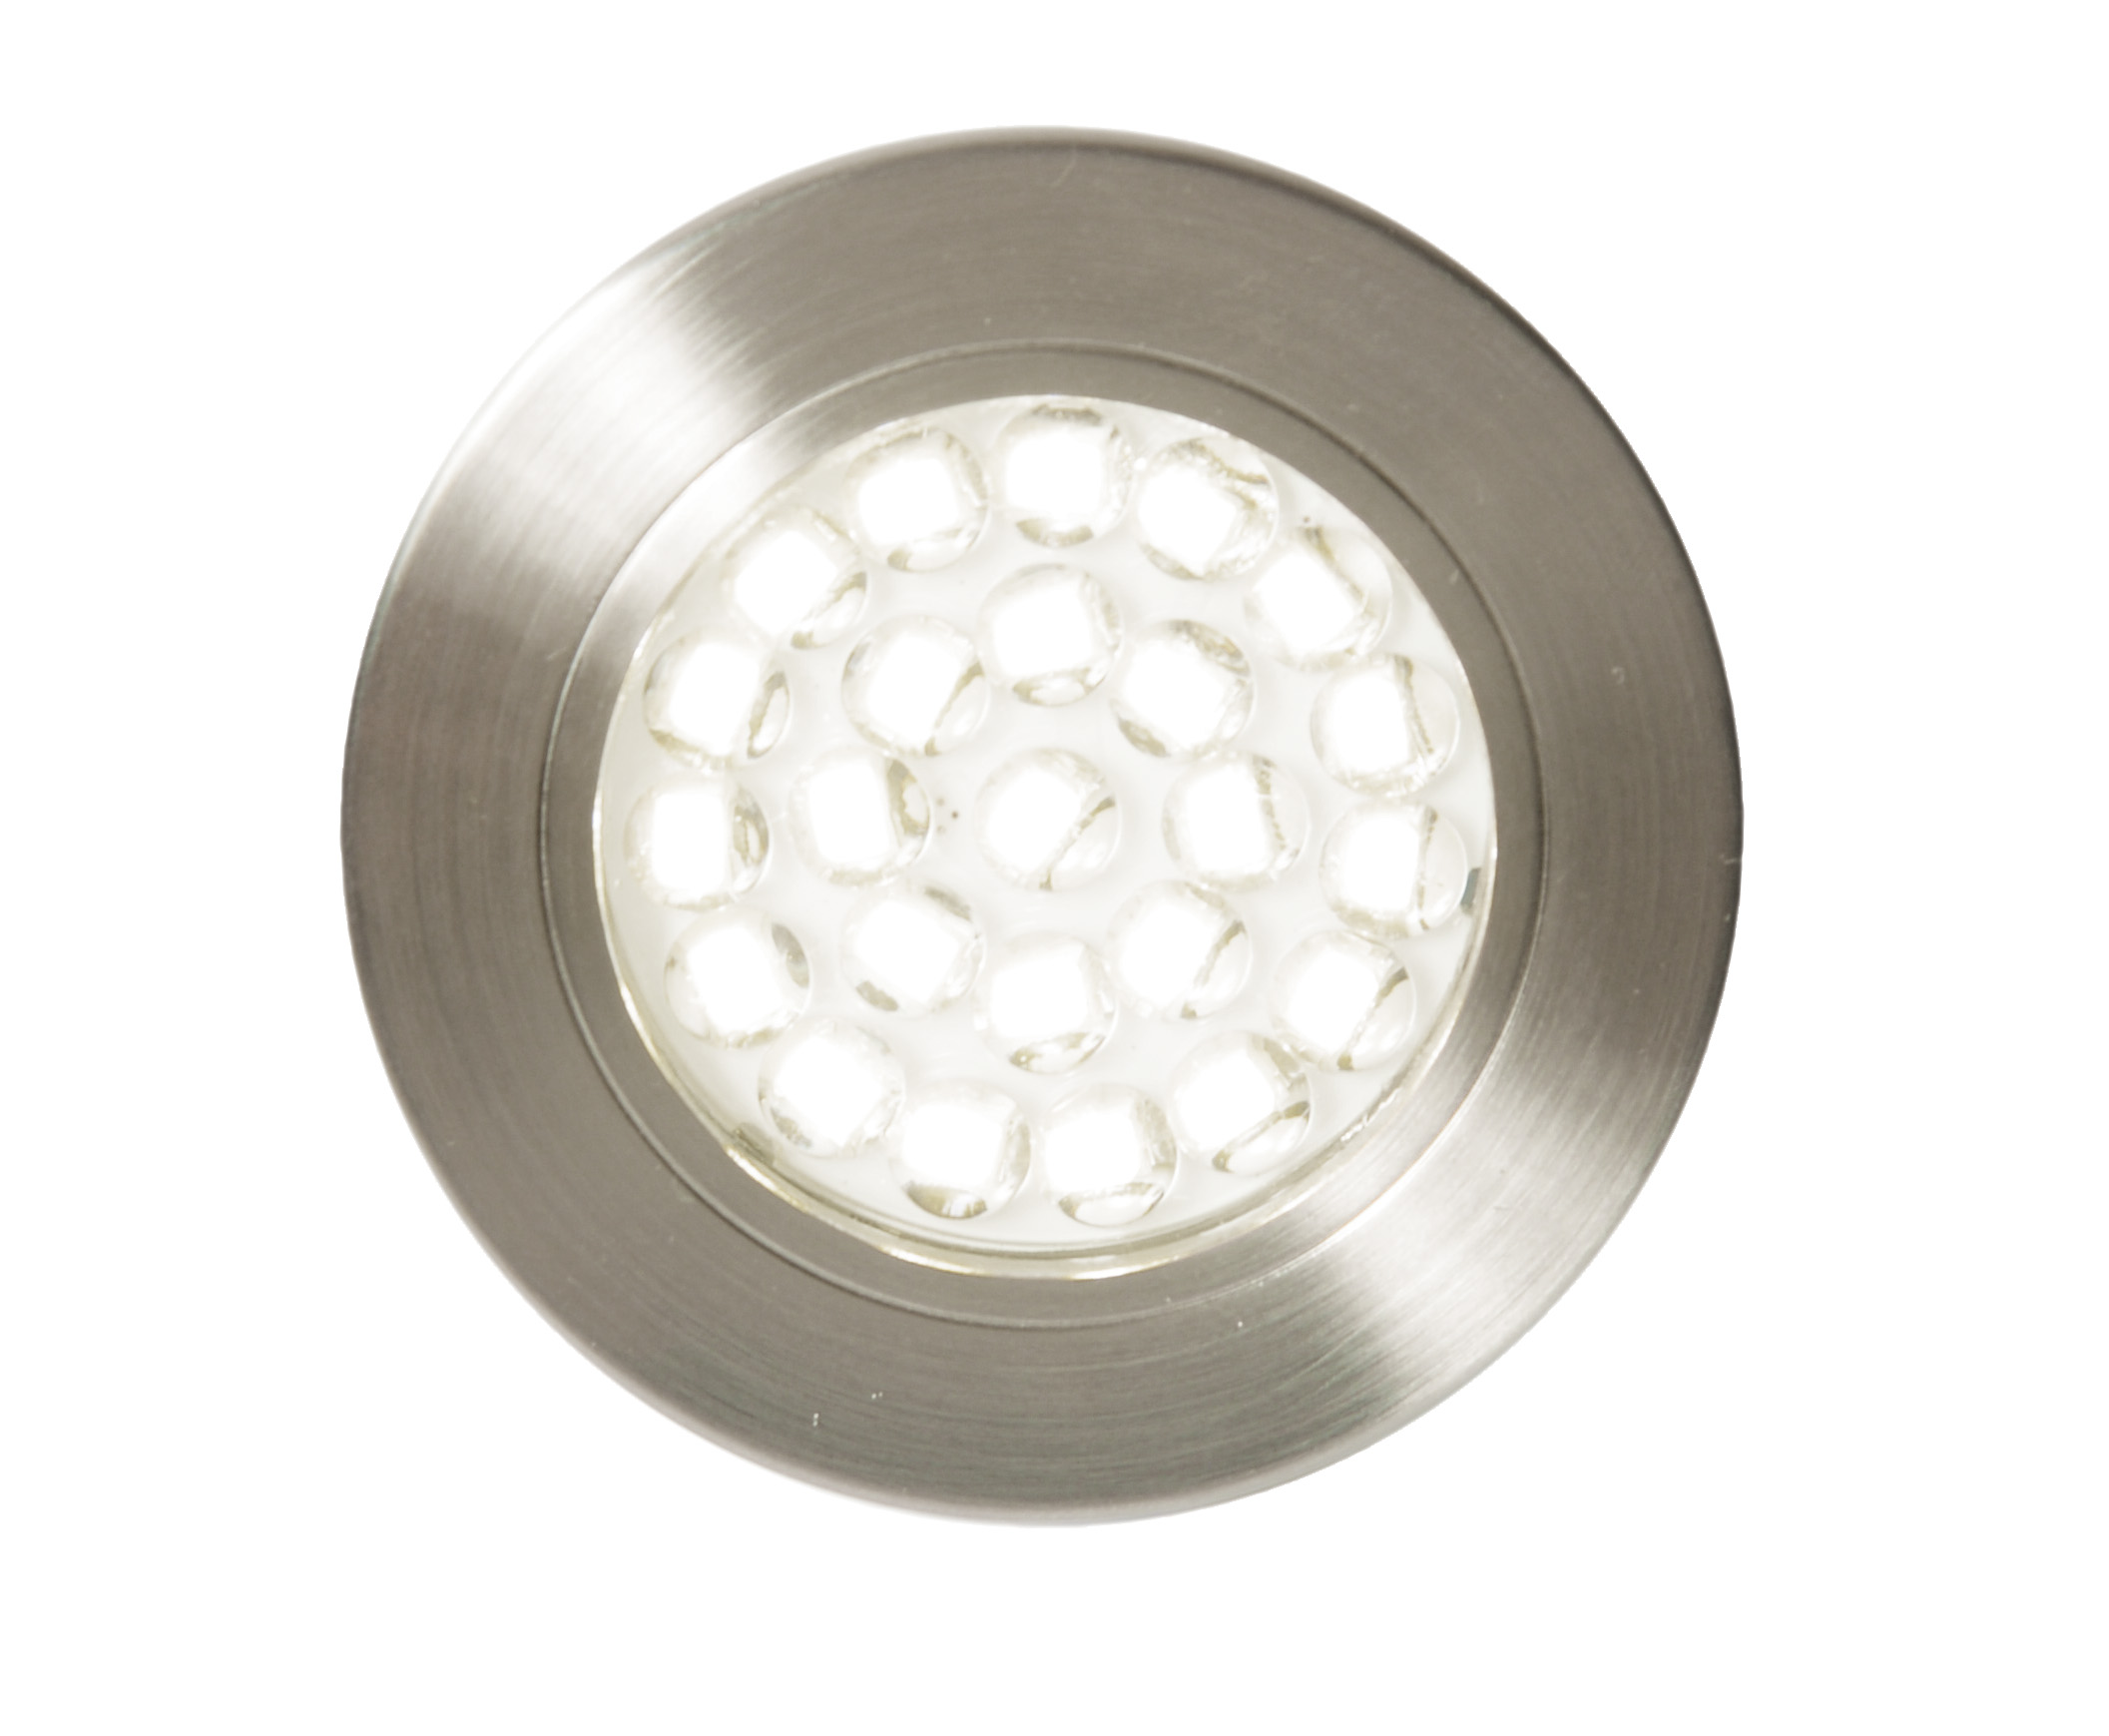 CUL-21624 Pozza LED Under Cabinet Light - Cool White